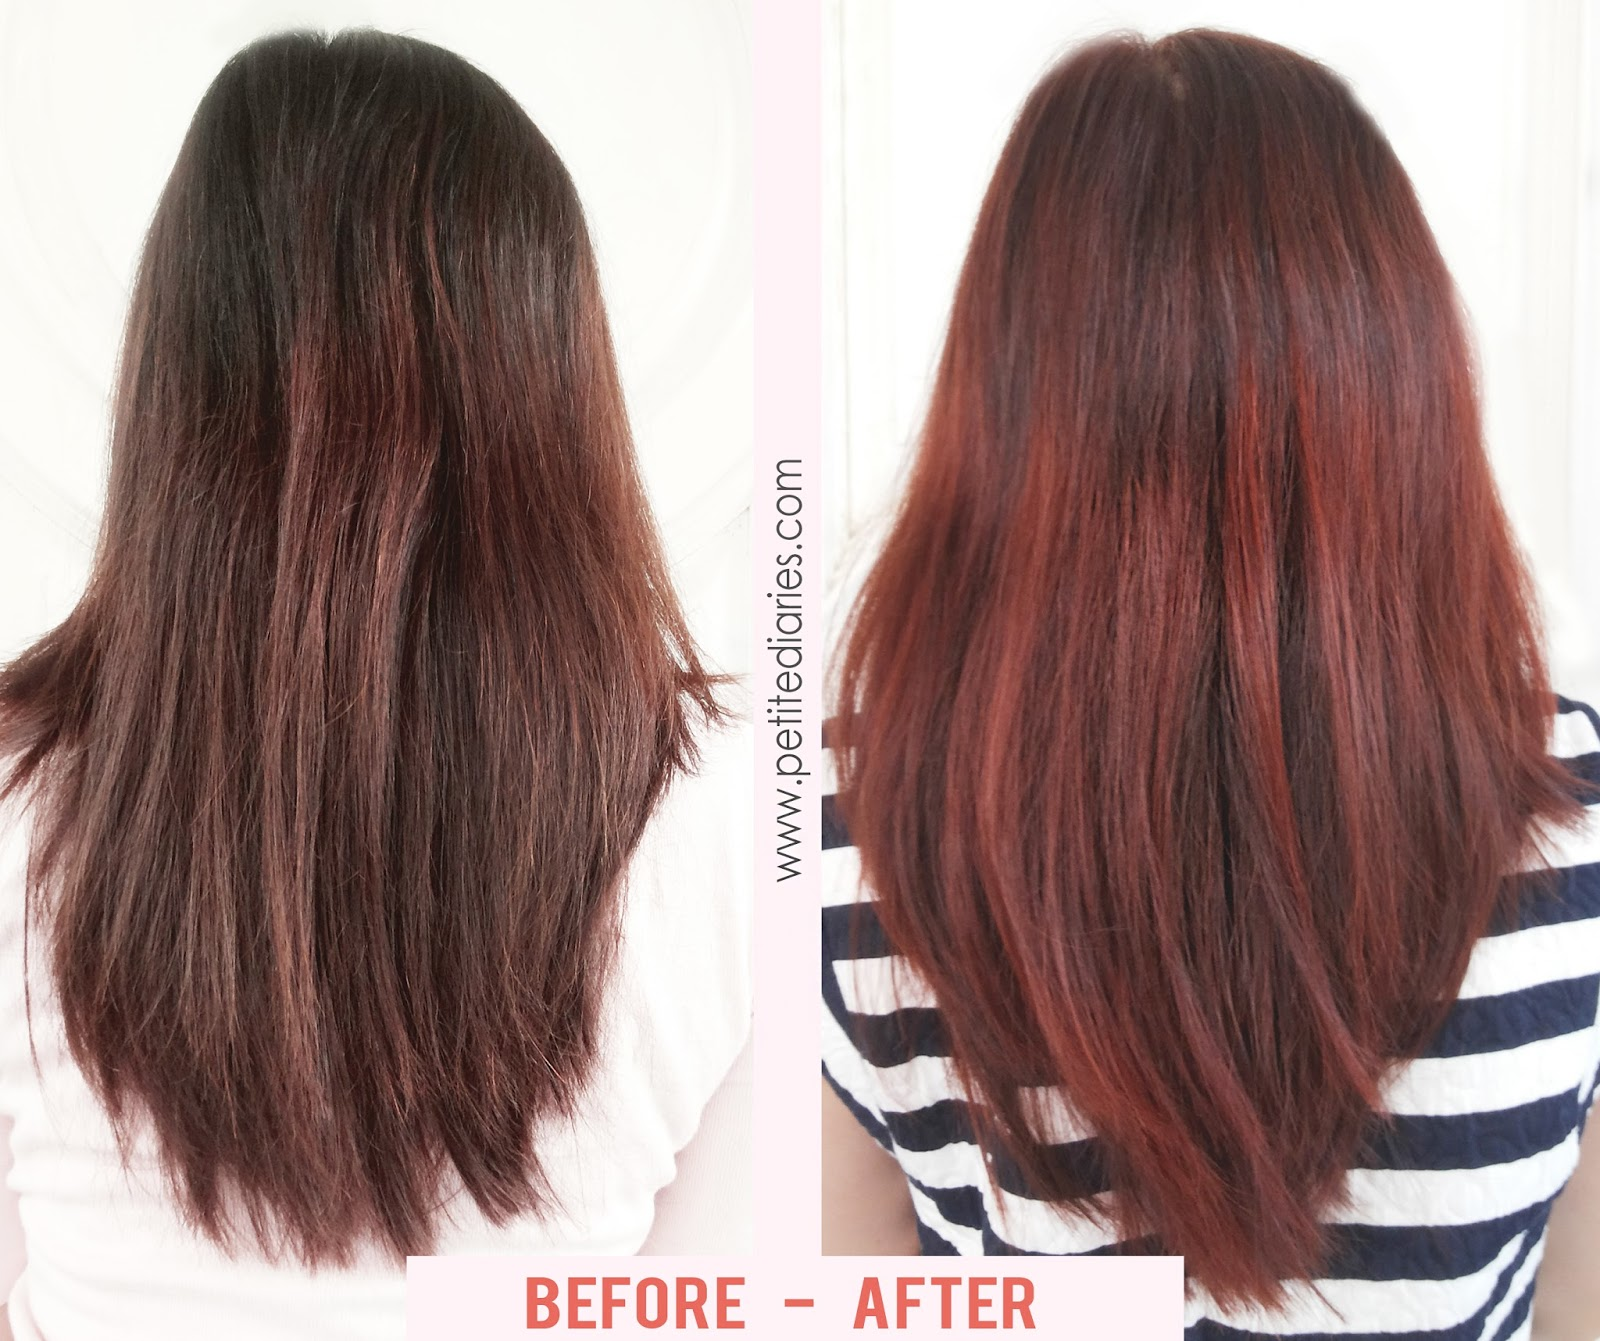 Review Etude House Hot Style Bubble Hair Coloring In Rd06 Wine Red